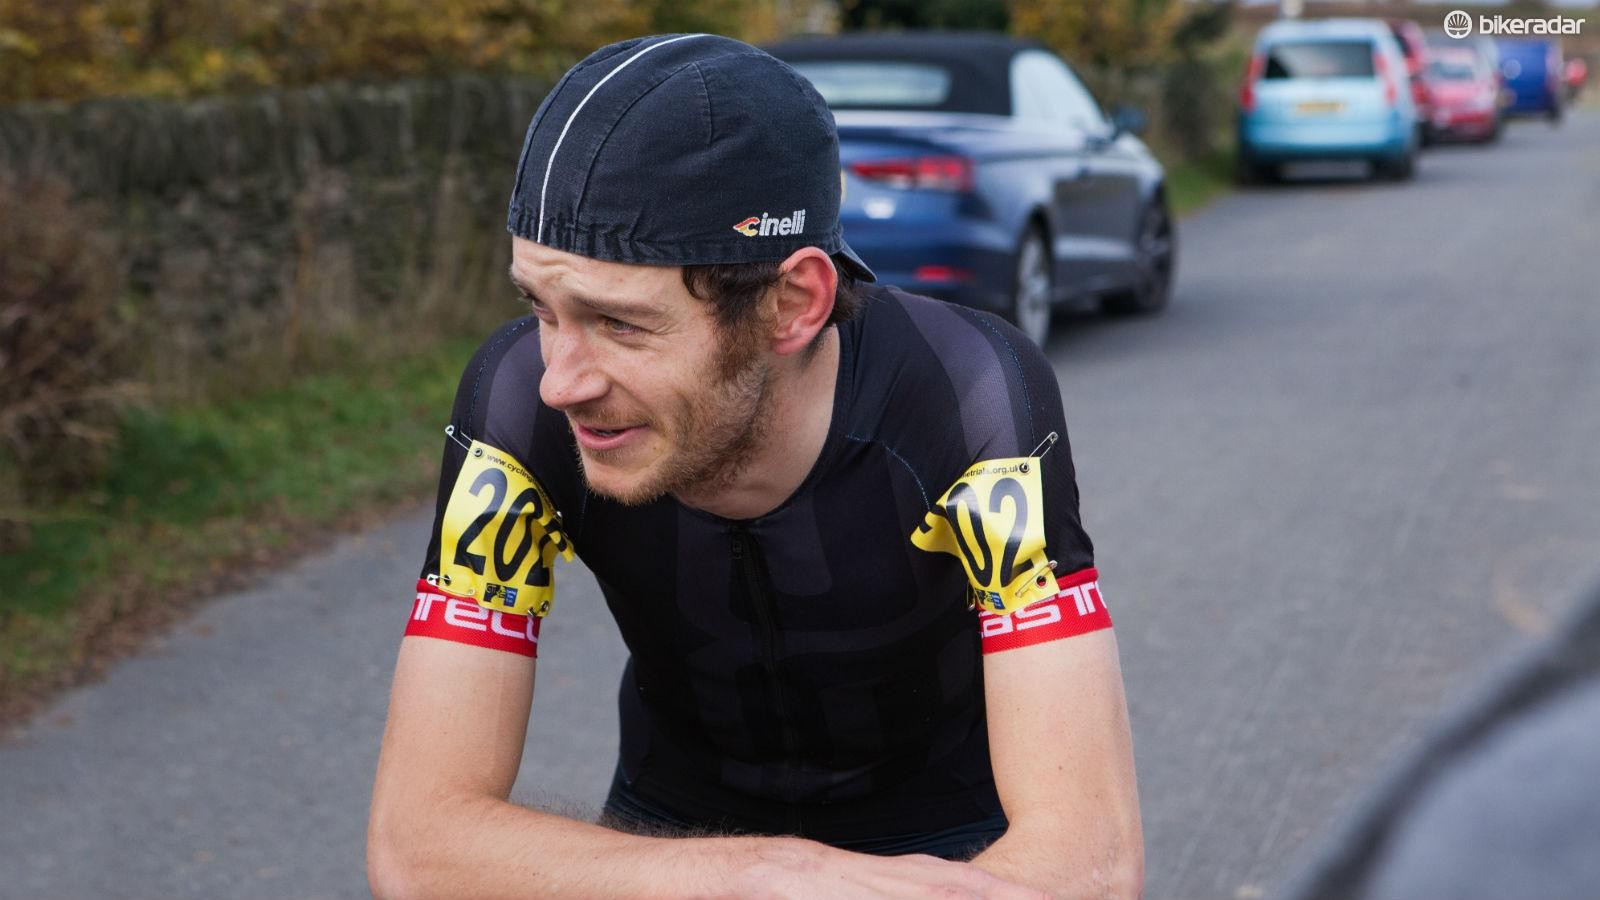 Joe's our hill climbing champ, and right now he's thinking about cake